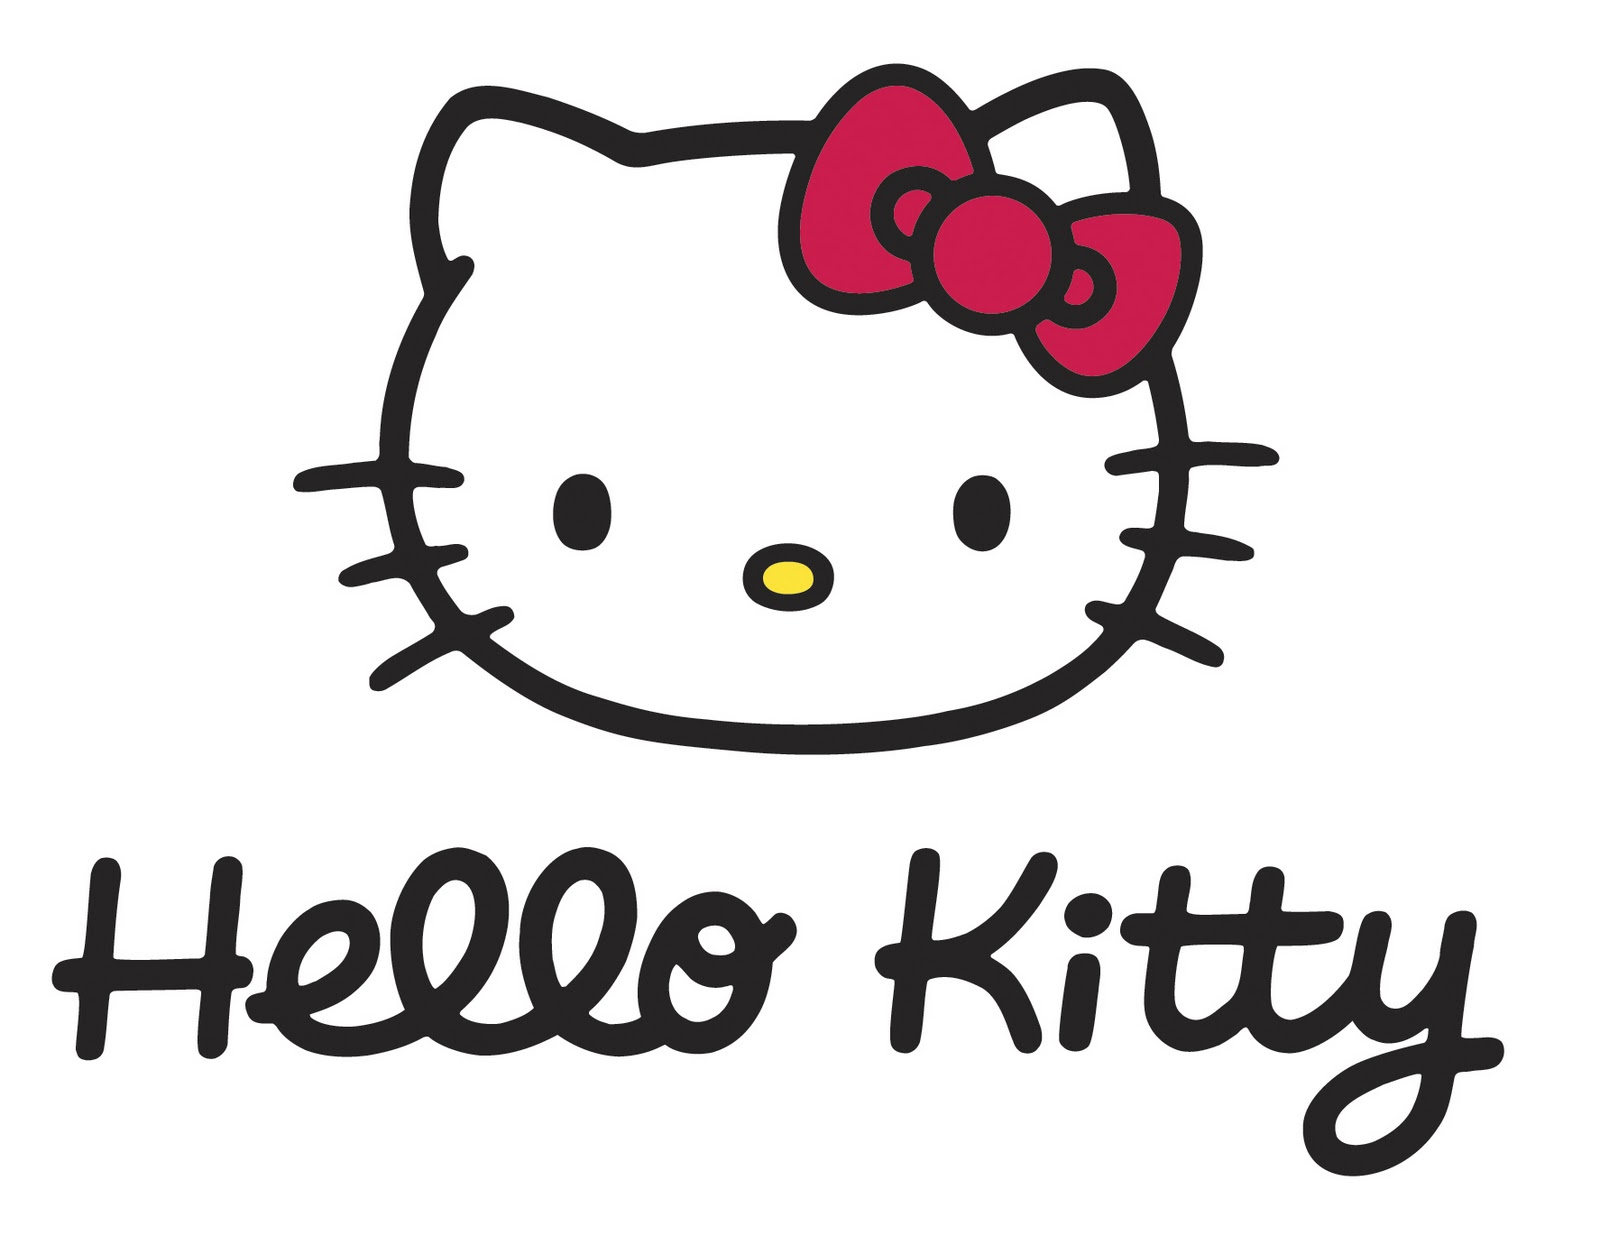 Cara con logotipo de hello kitty